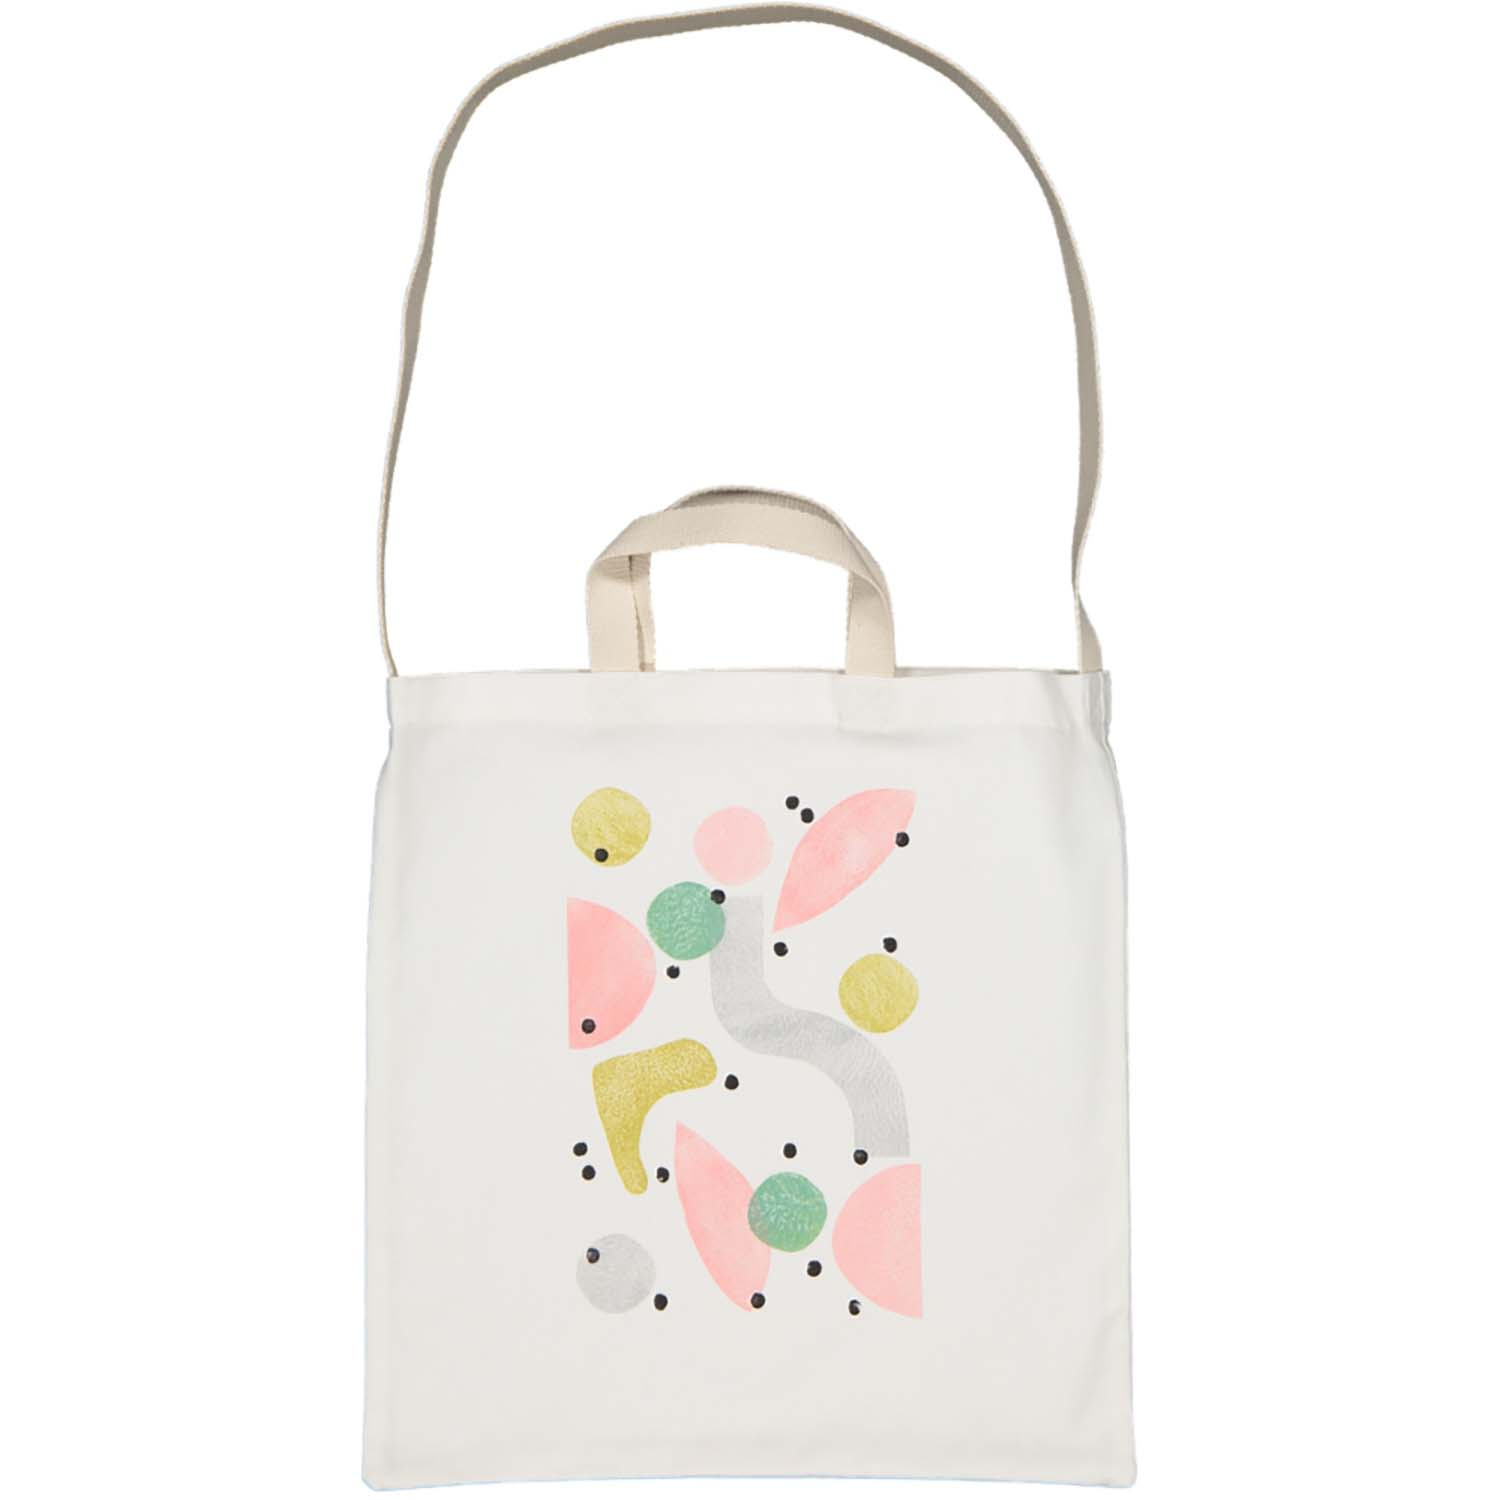 2-Way tote - pastel shapes